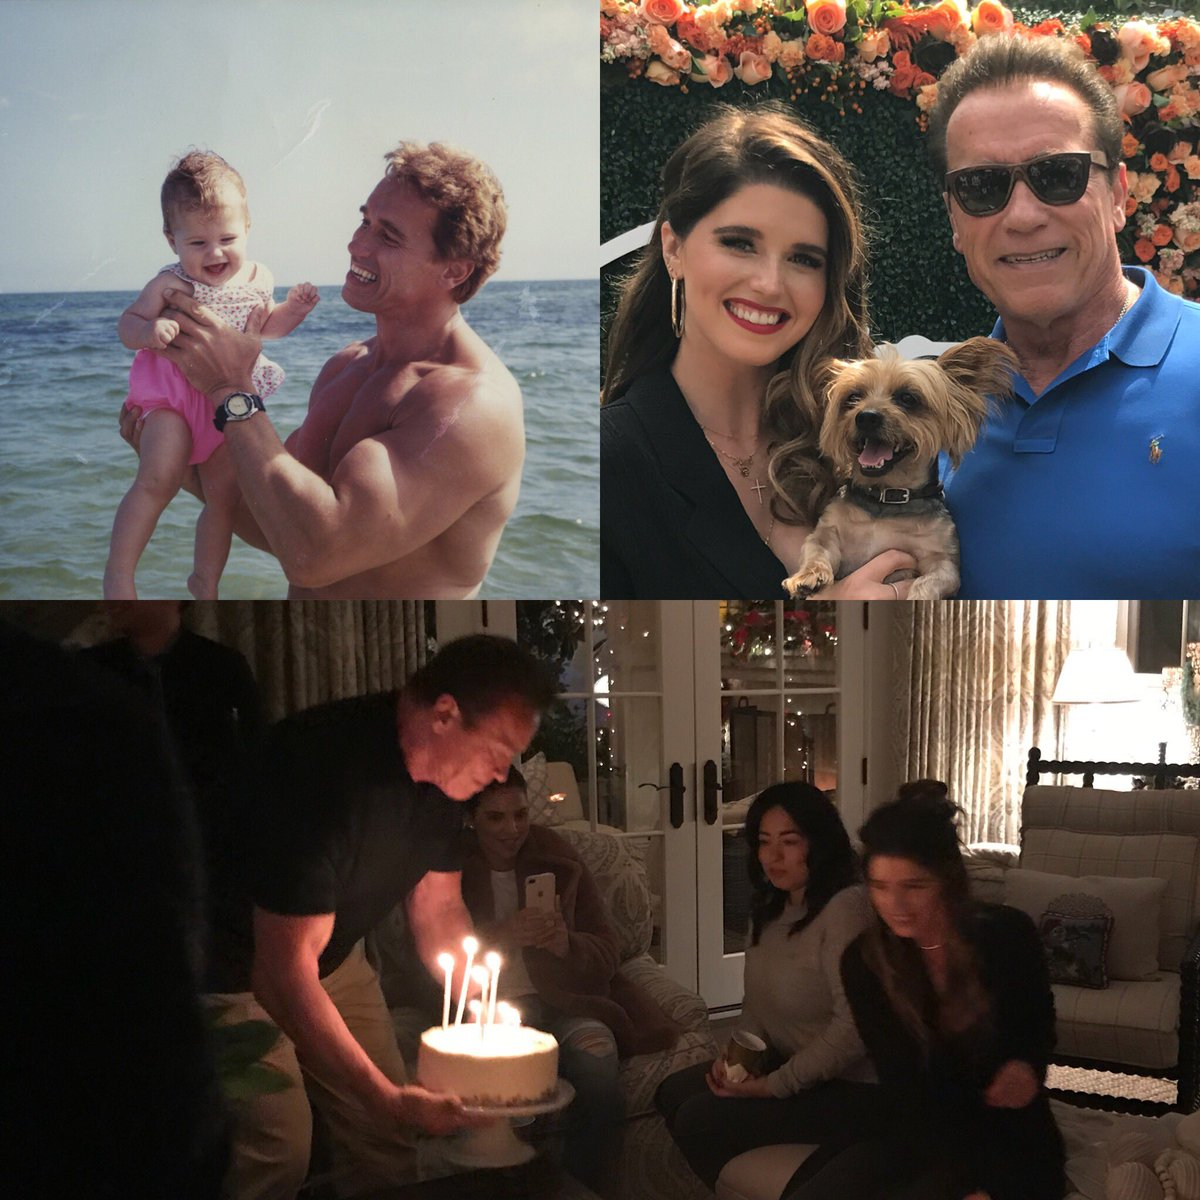 So happy to be home from France in time to celebrate @KSchwarzenegger's bday yesterday. When you were born & I was a new father, if I could have imagined everything you would accomplish in your first 28 years, my head would have exploded like in Total Recall. I love you so much.